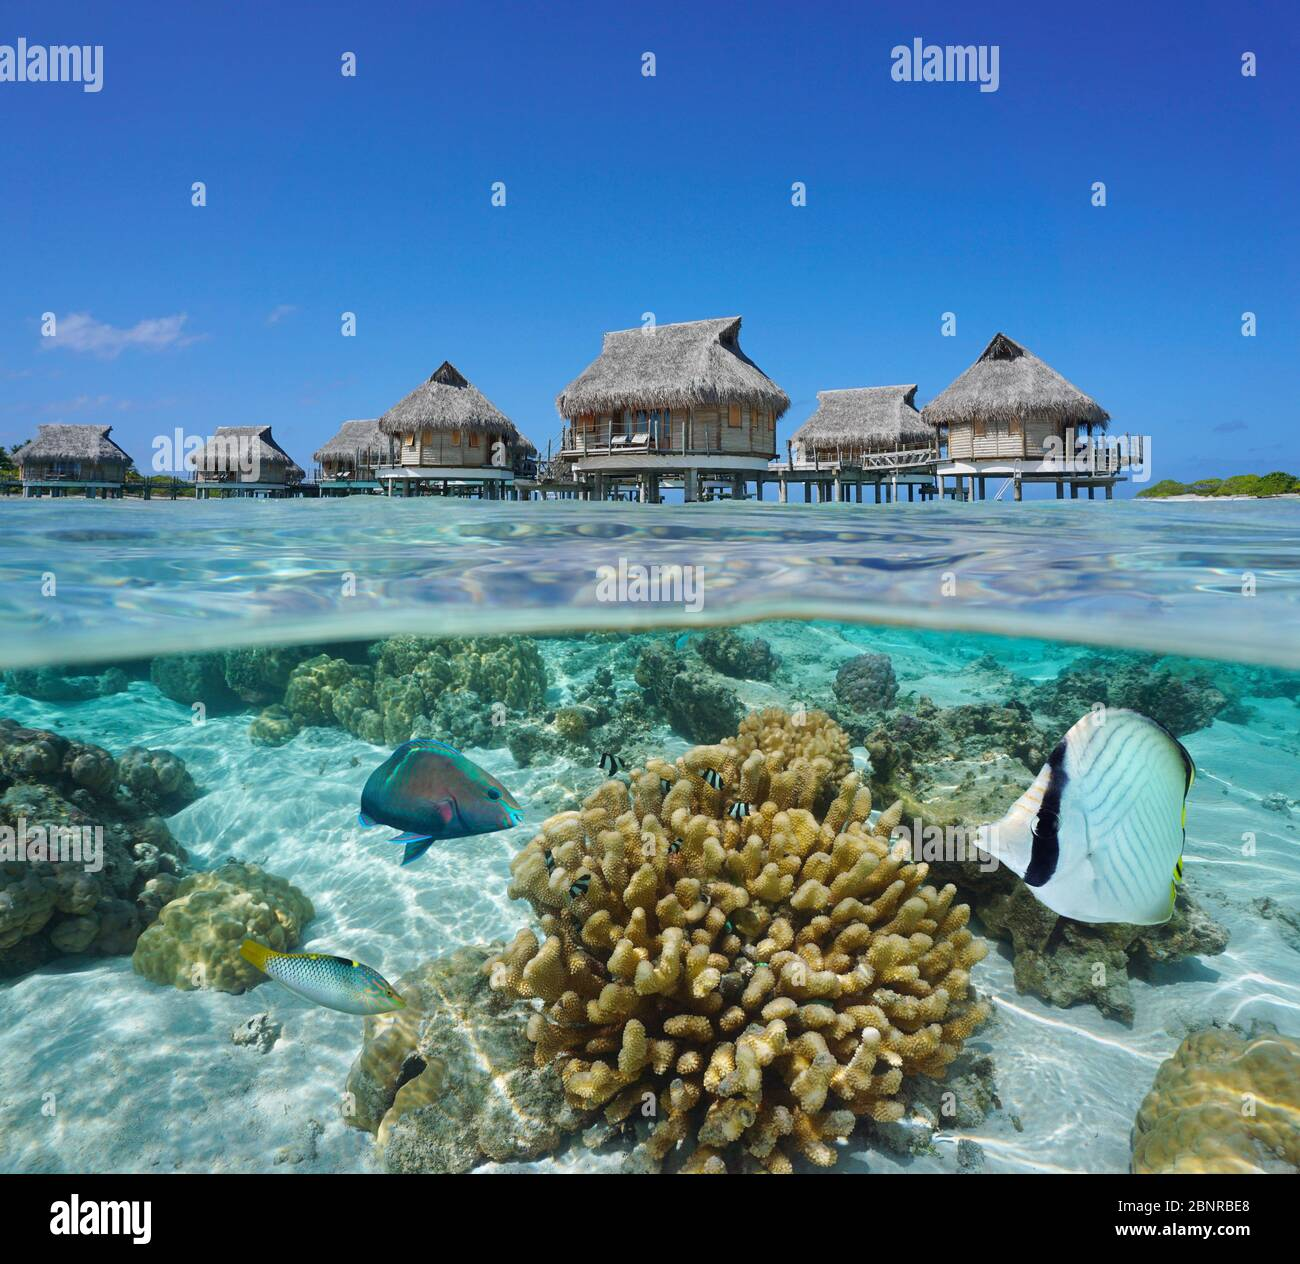 Tropical bungalows overwater and fish with coral underwater, split view over and under water surface, French Polynesia, Pacific ocean, Oceania Stock Photo